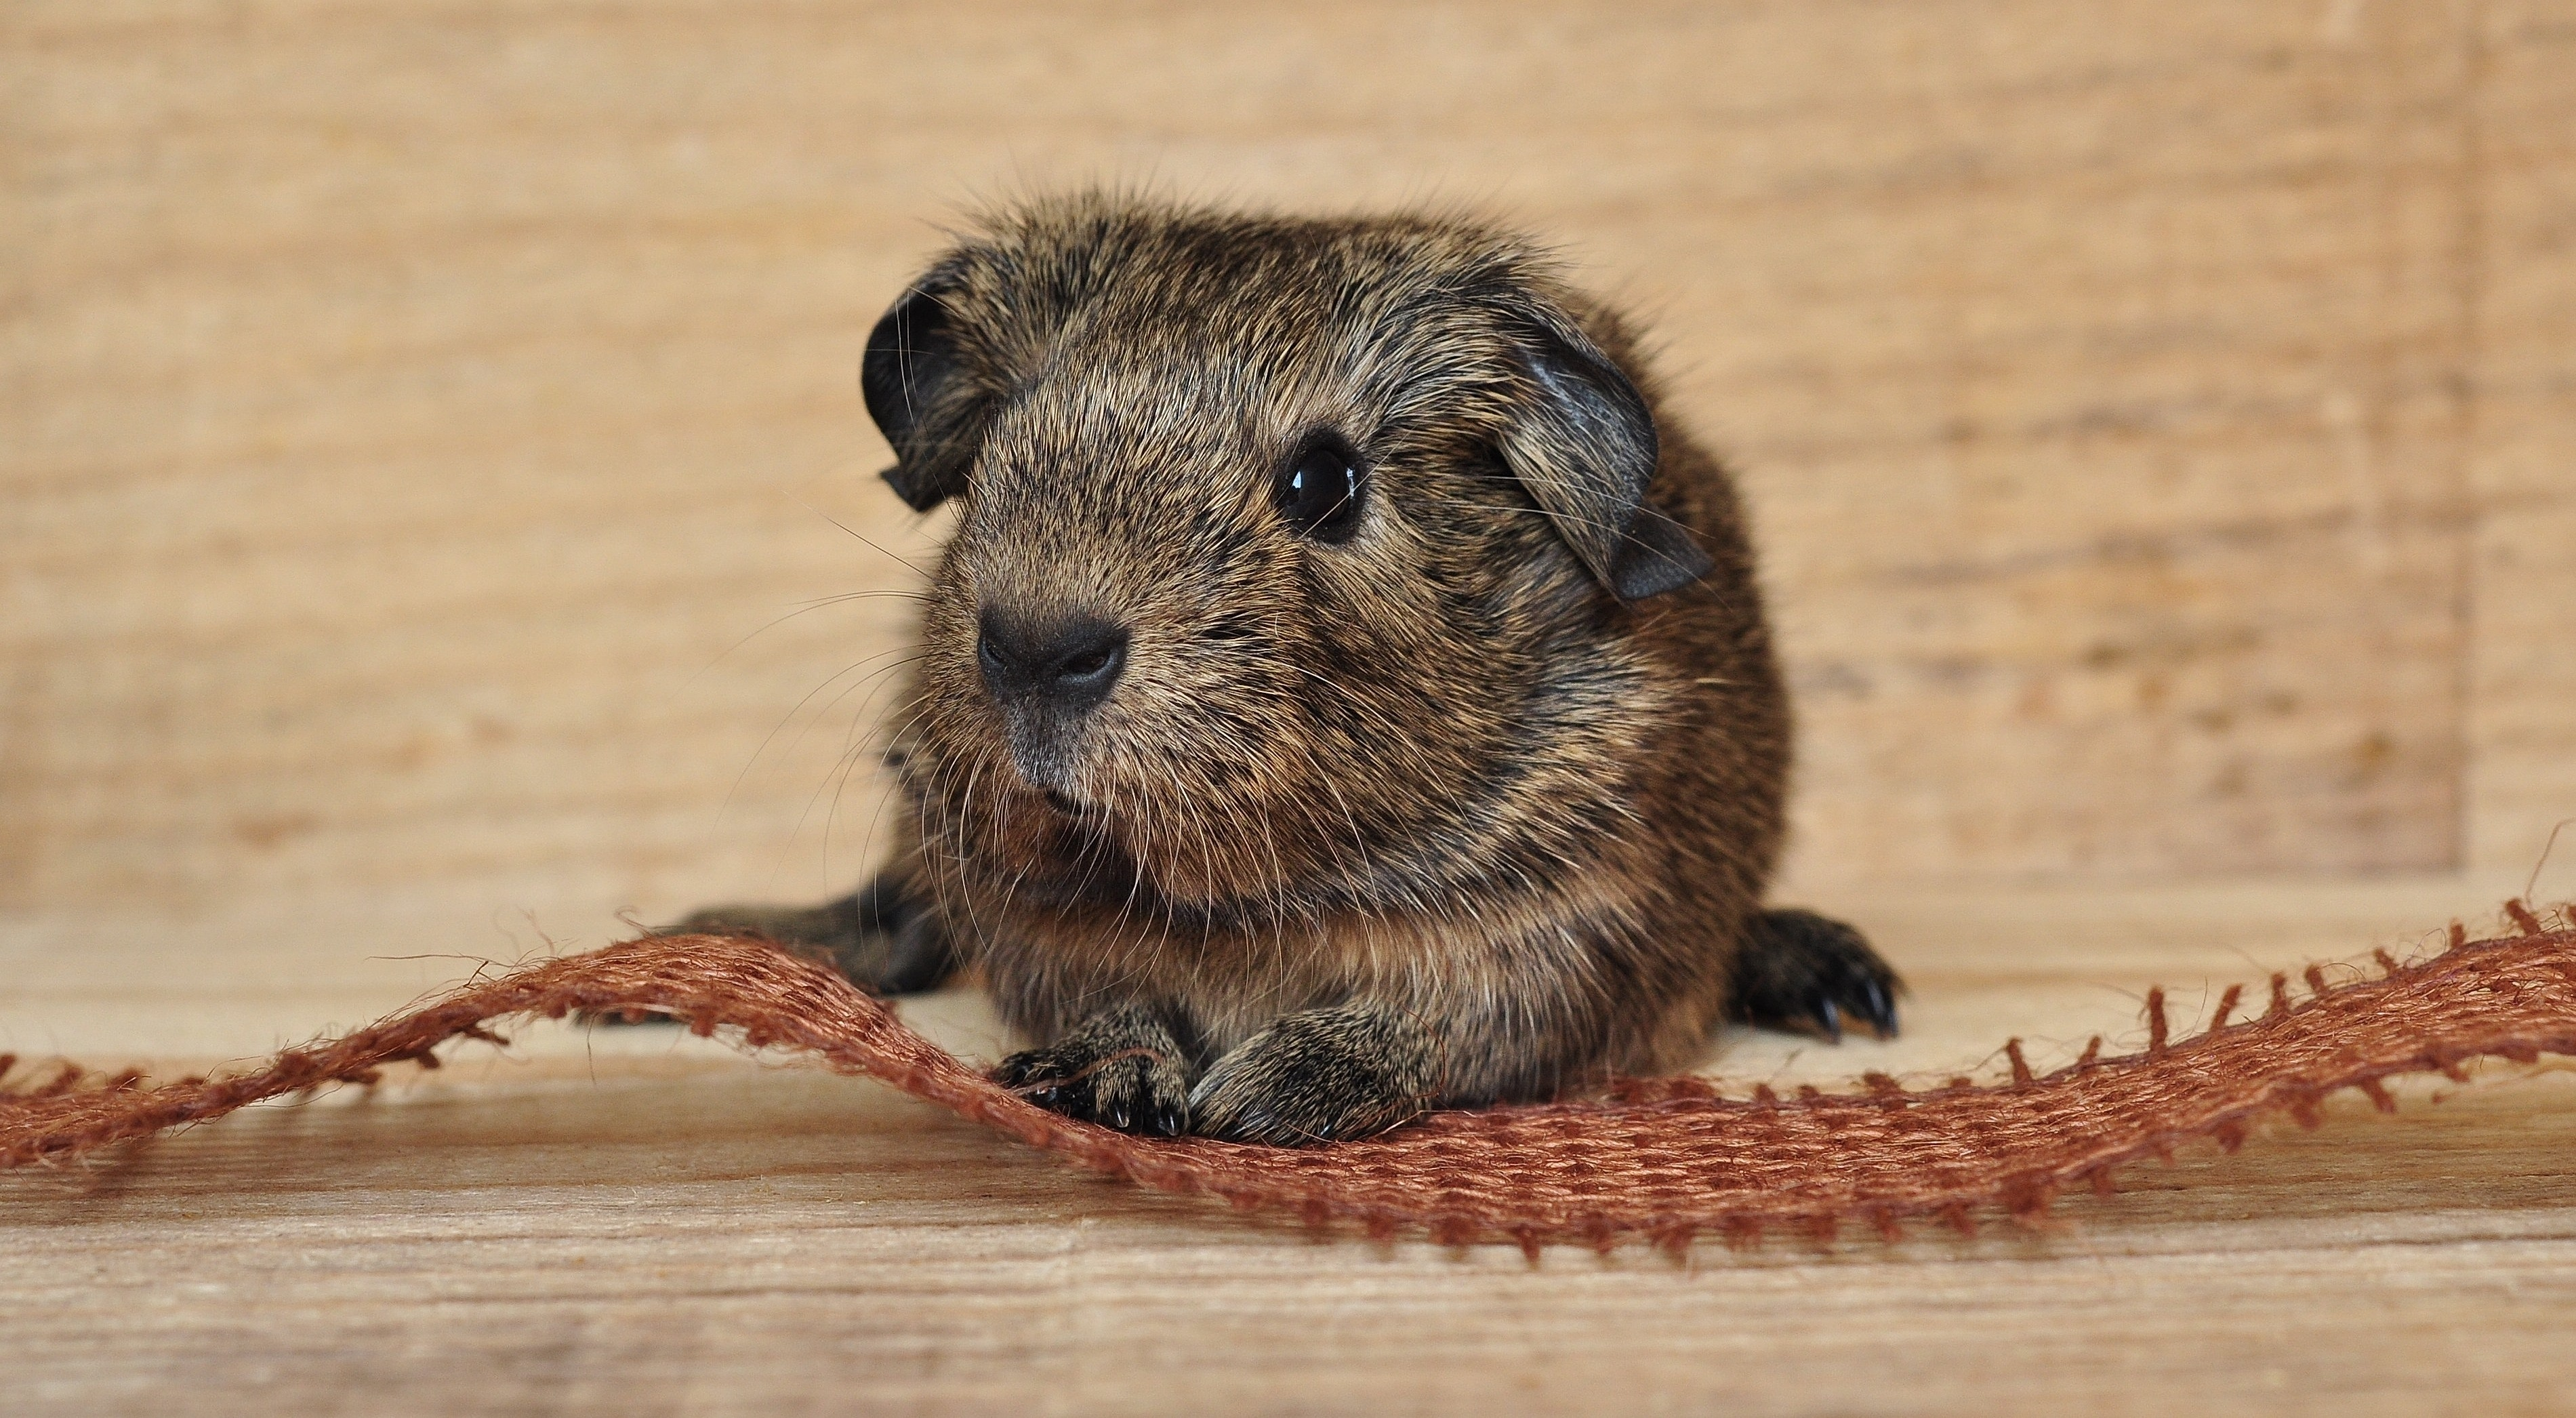 116420 download wallpaper Animals, Guinea Pig, Pretty, Rodent, Beautiful screensavers and pictures for free